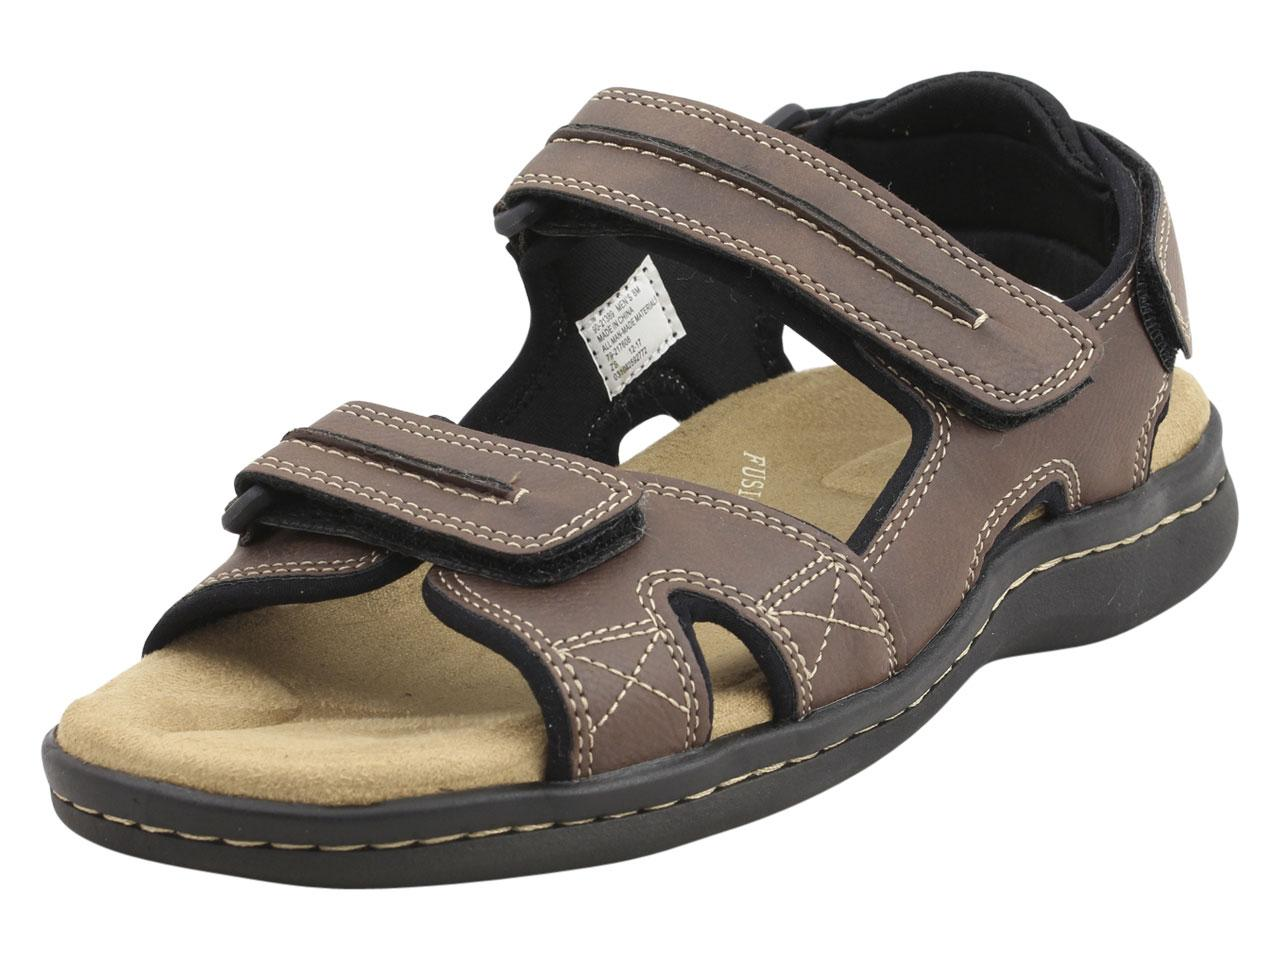 Newpage Memory Foam Sandals Shoes